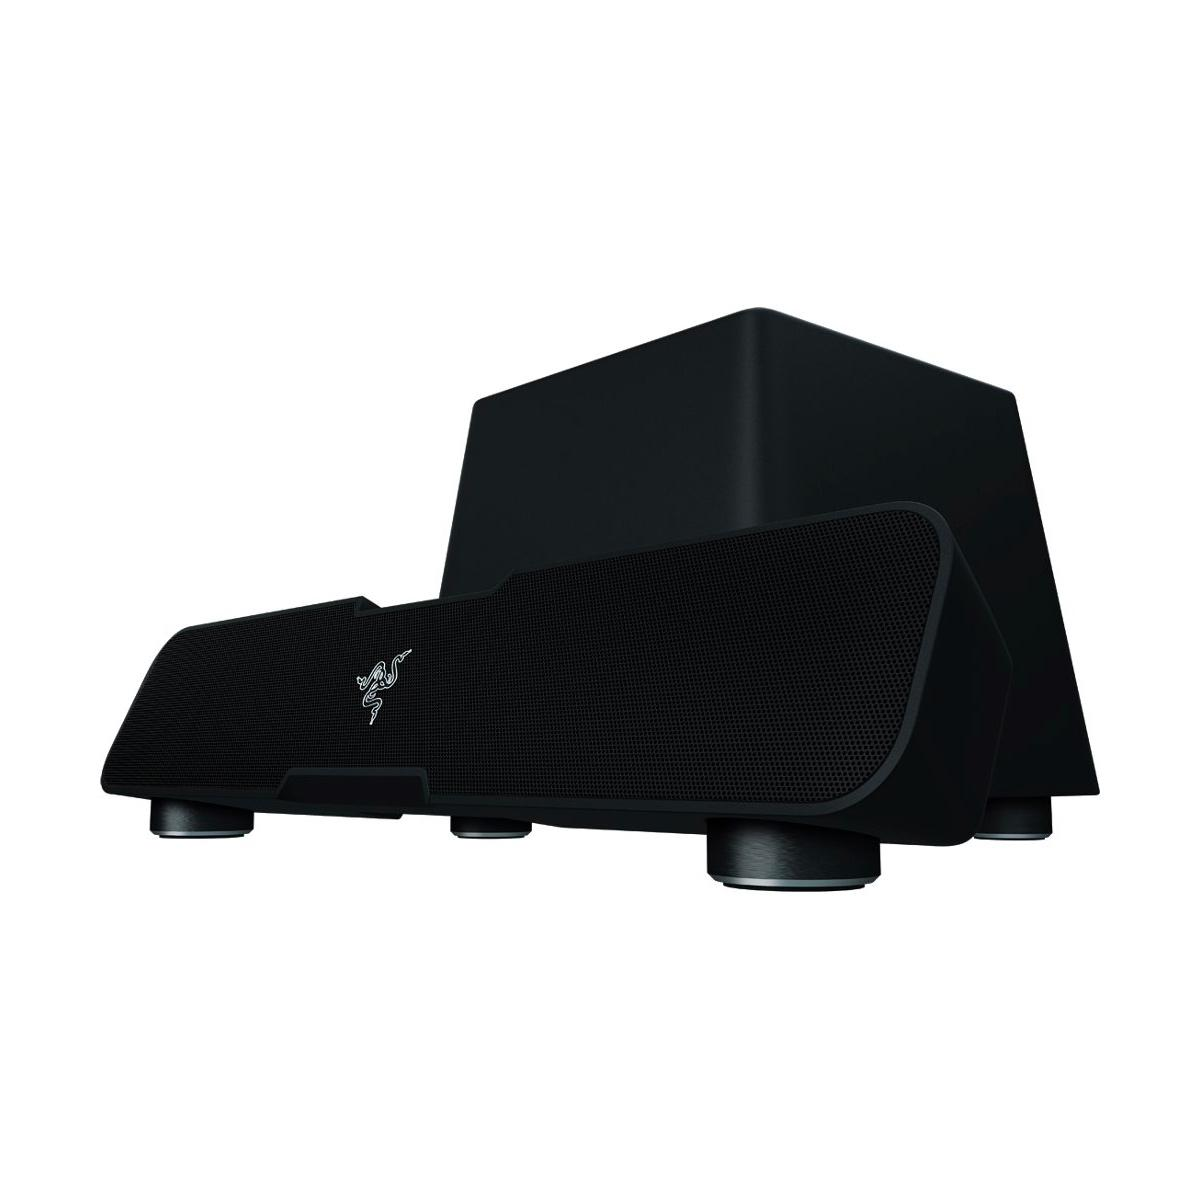 razer-leviathan-speakers-5-1-bluetooth-soundbar